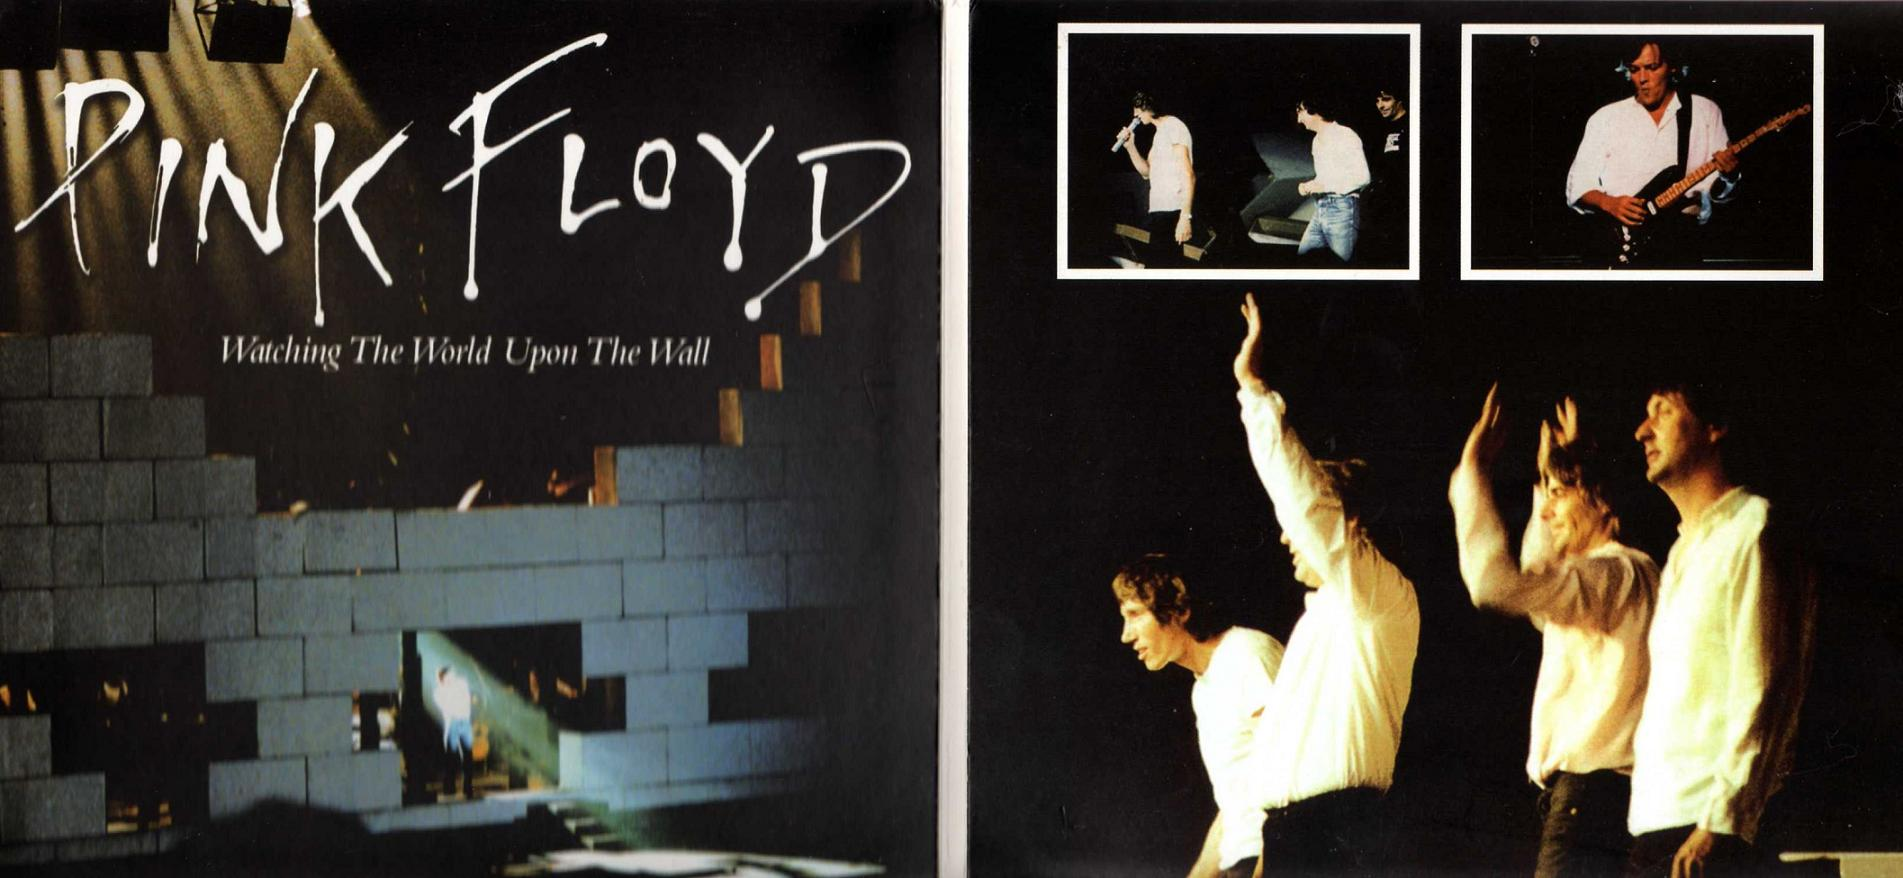 1981-06-16-watching-the-world-upon-the-wall-booklet2